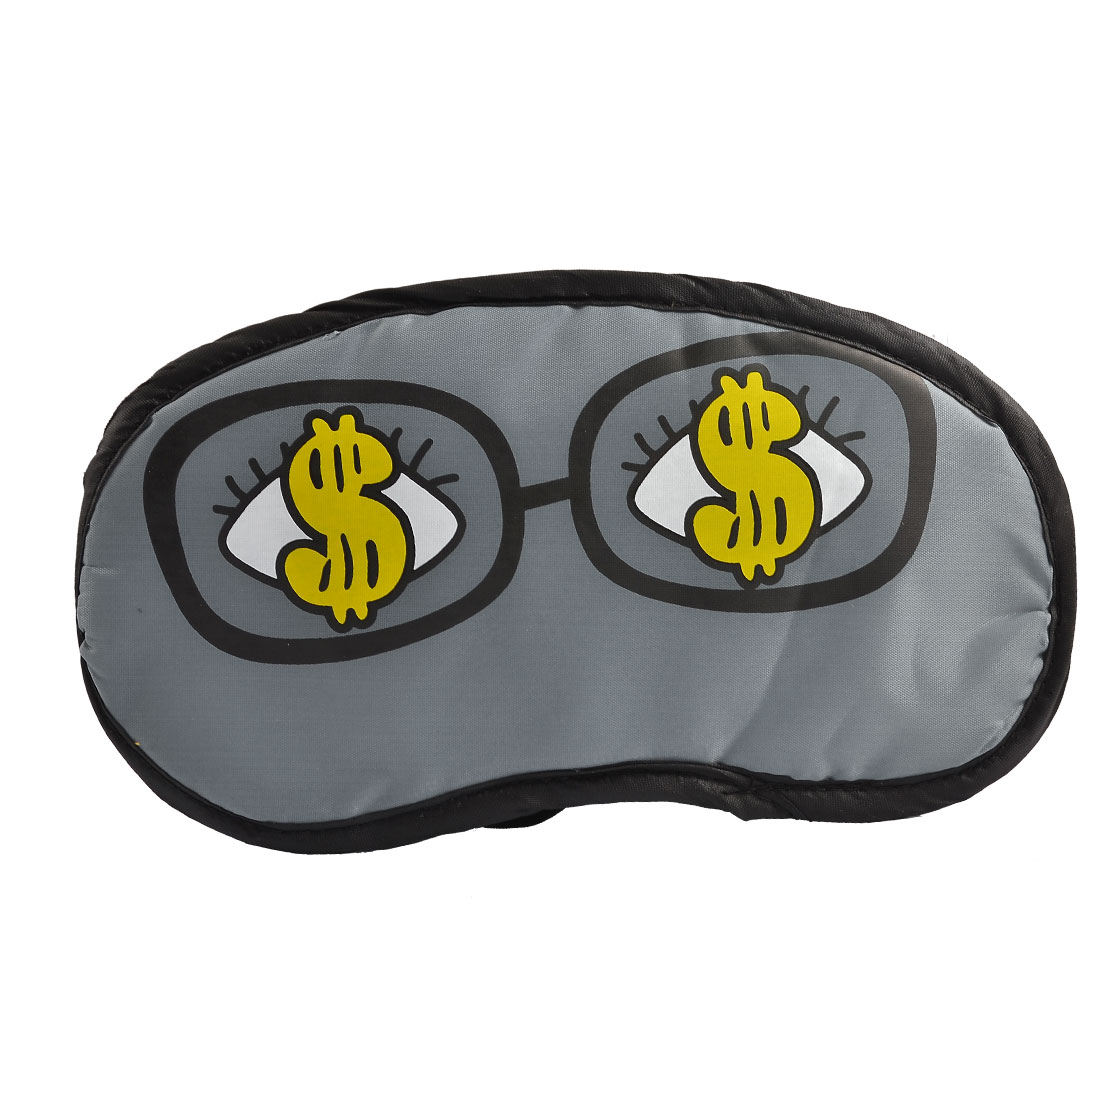 Built-in Sponge Dollar Eyes Print Gray Blindfold Eye Cover Eyeshade